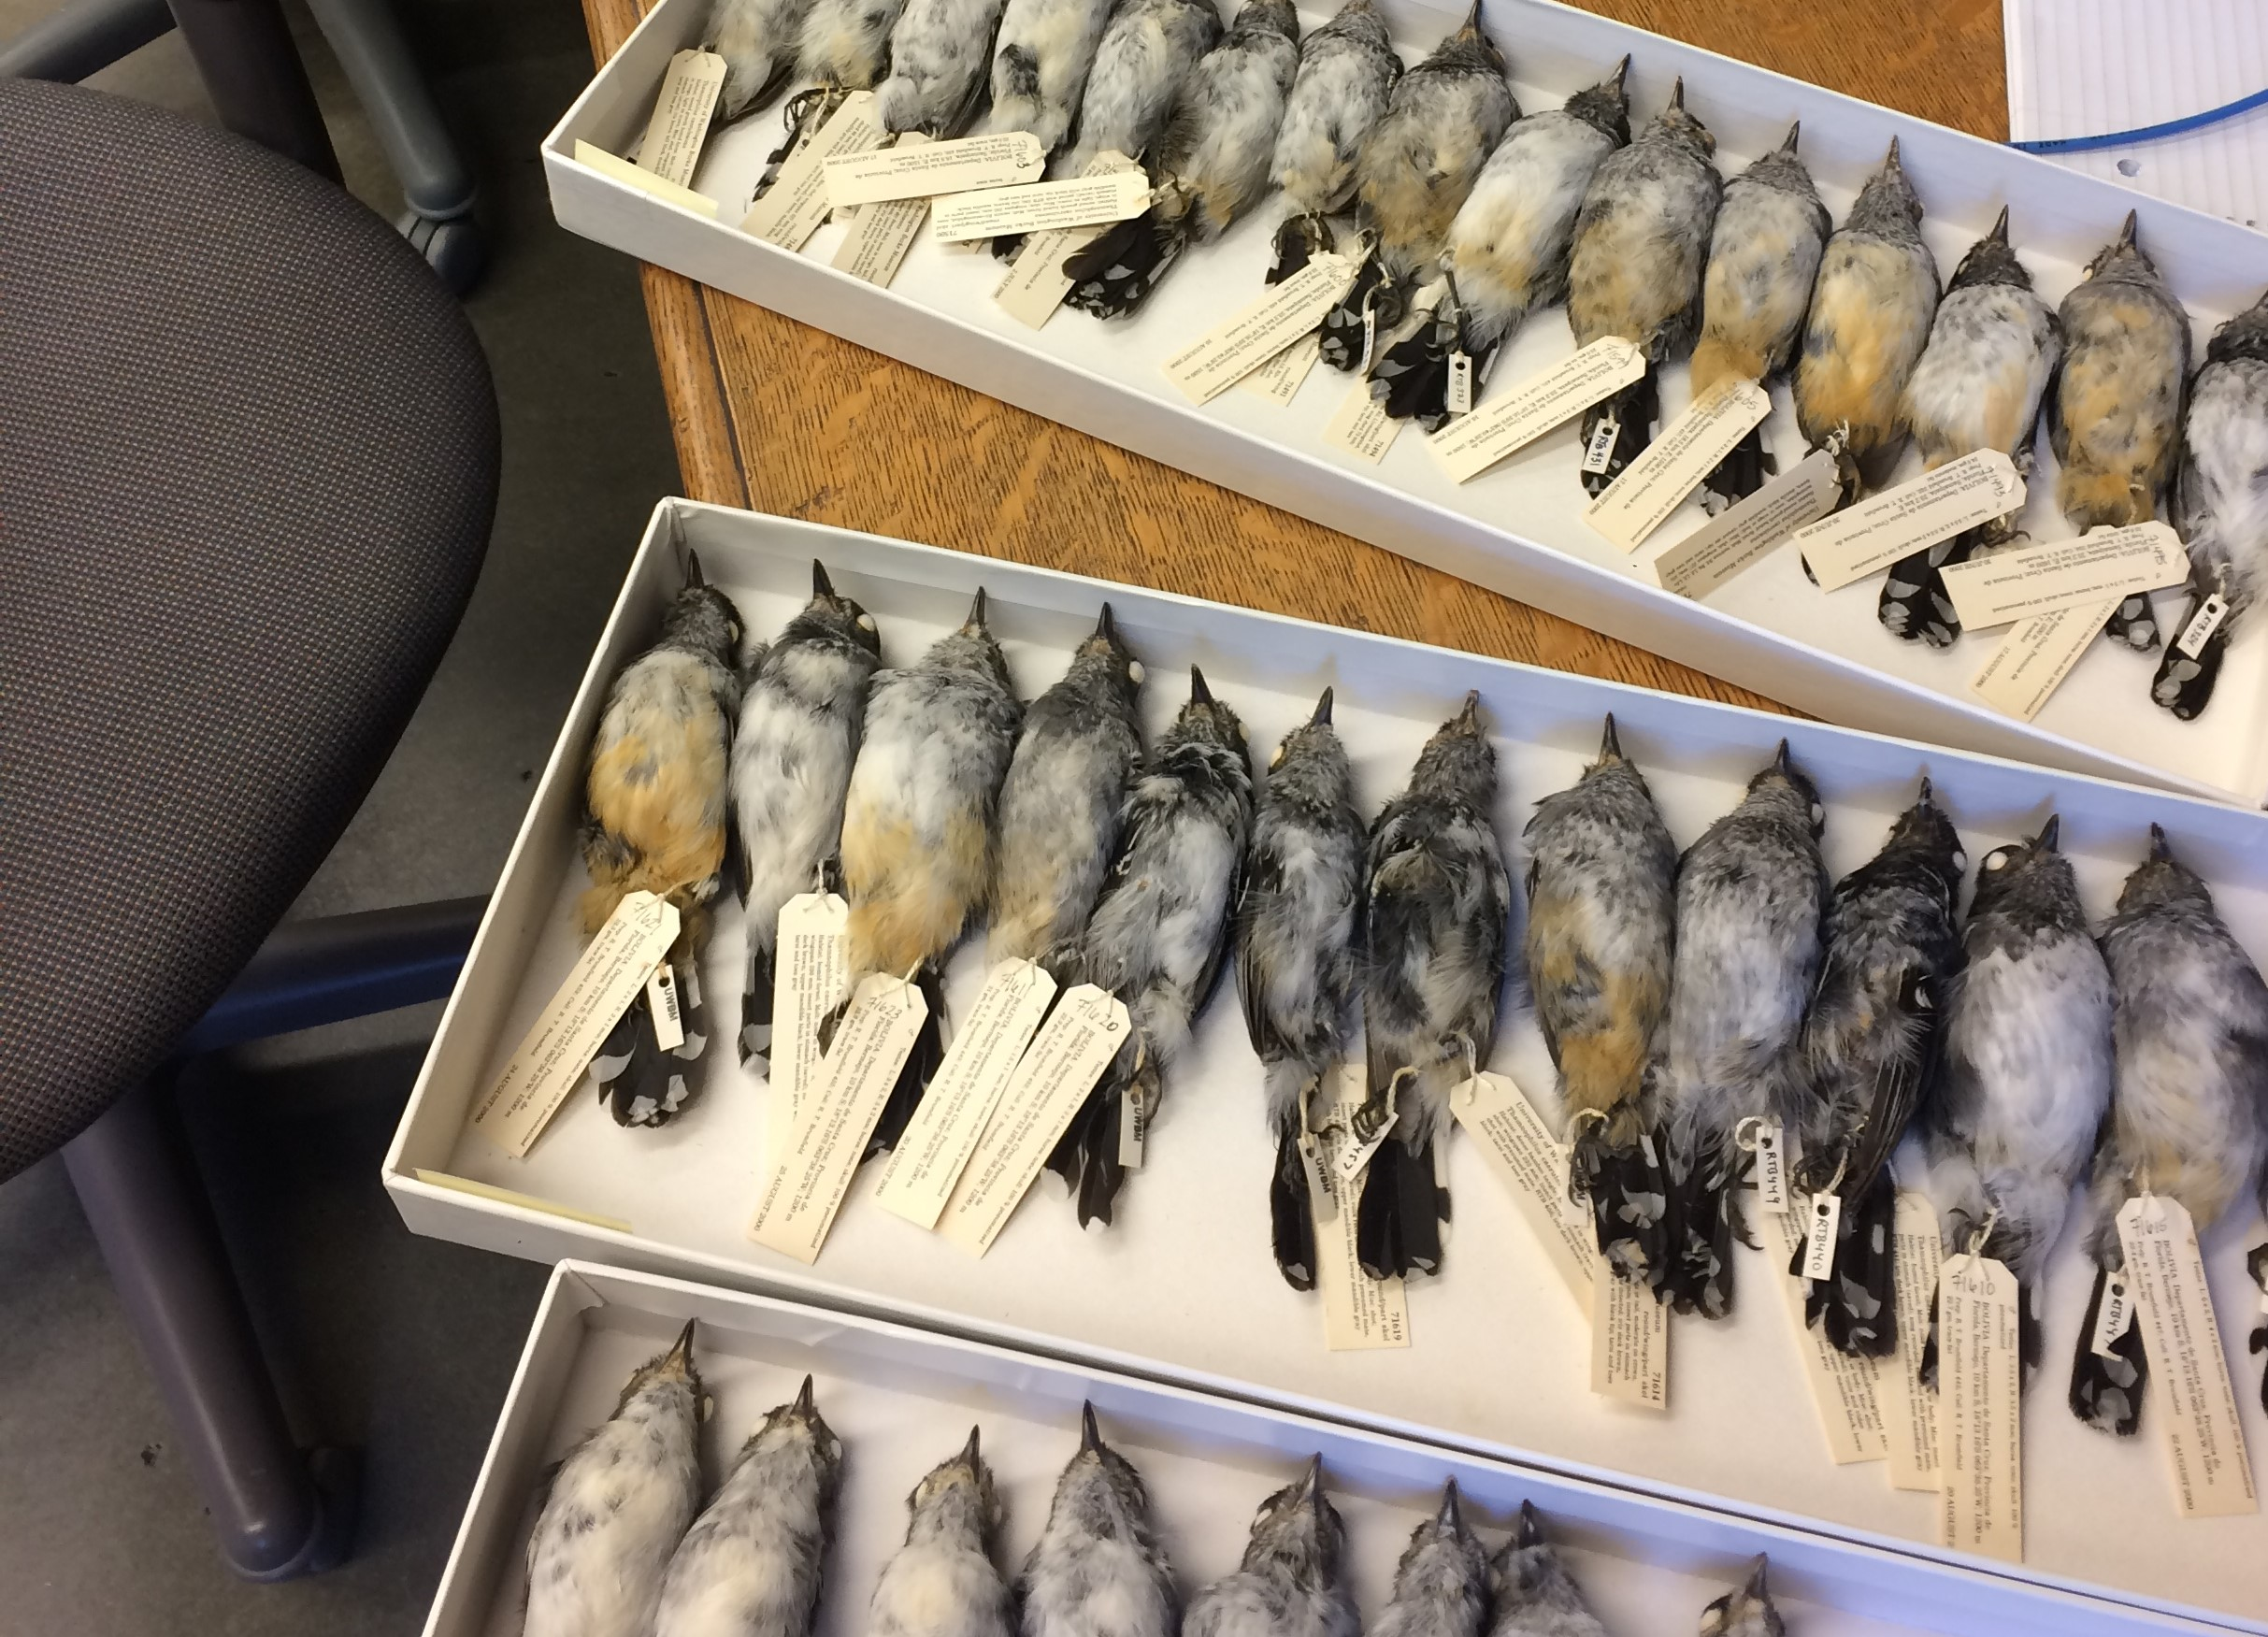 trays of preserved bird specimens